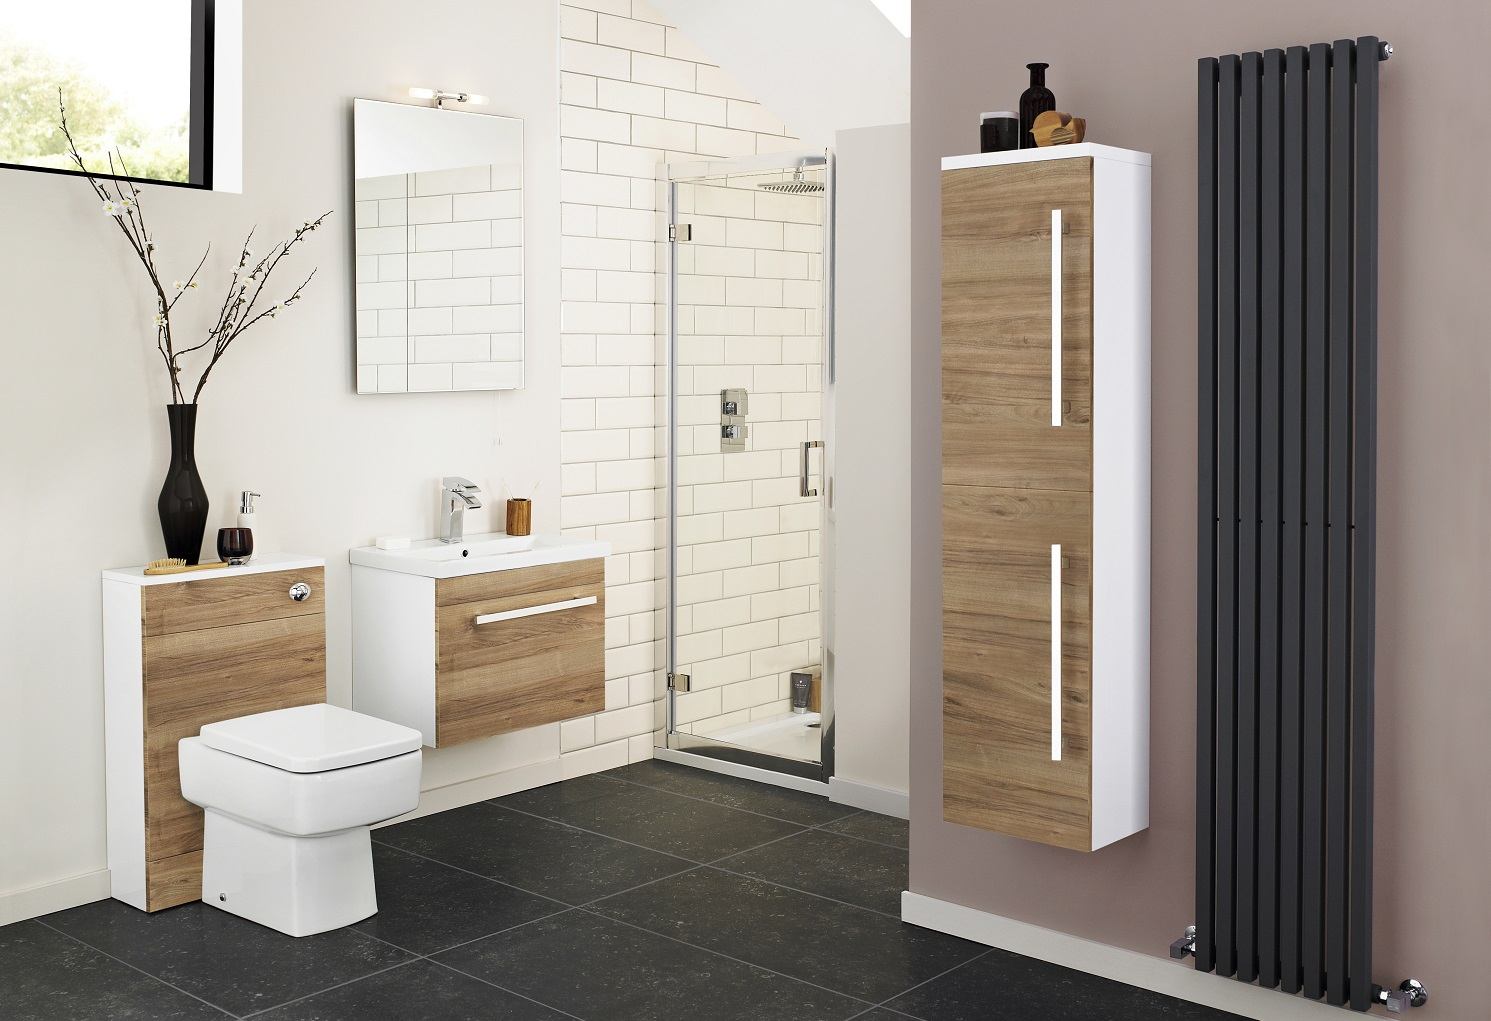 matching cabinets in modern bathroom